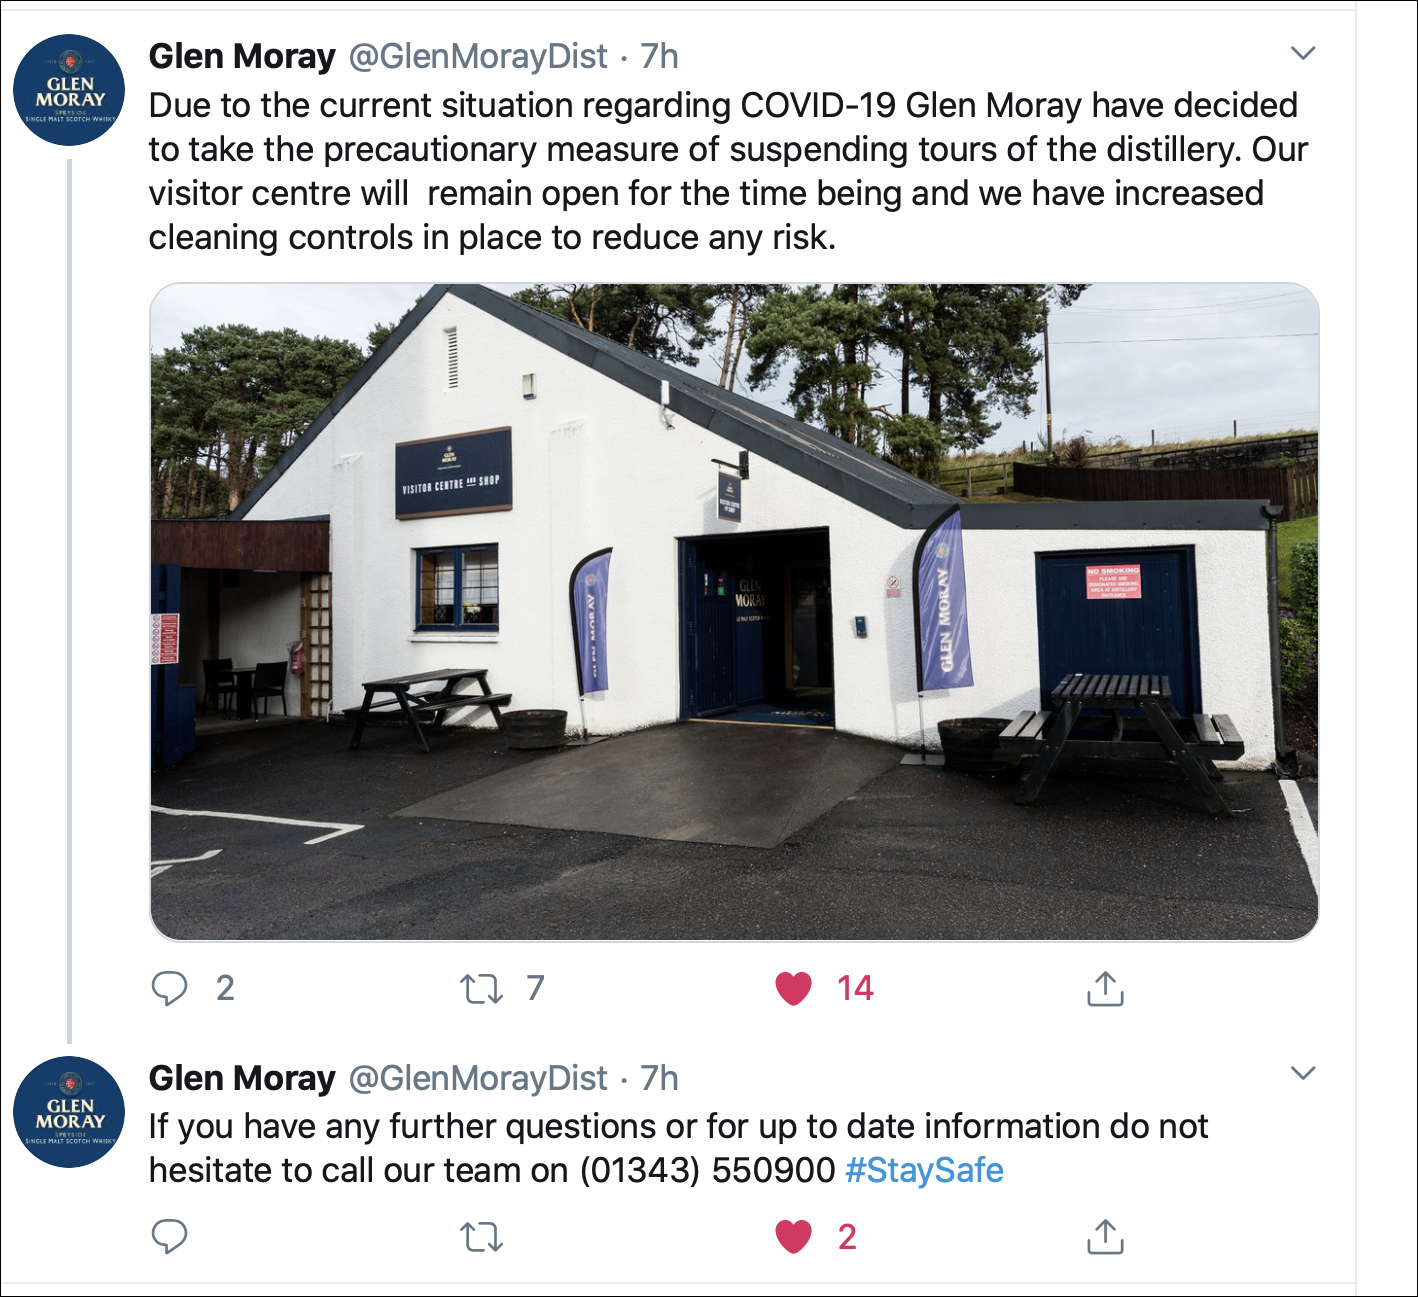 Tweets from Glen Moray Distillery announcing the suspension of tours because of the coronavirus pandemic. Image courtesy Twitter.